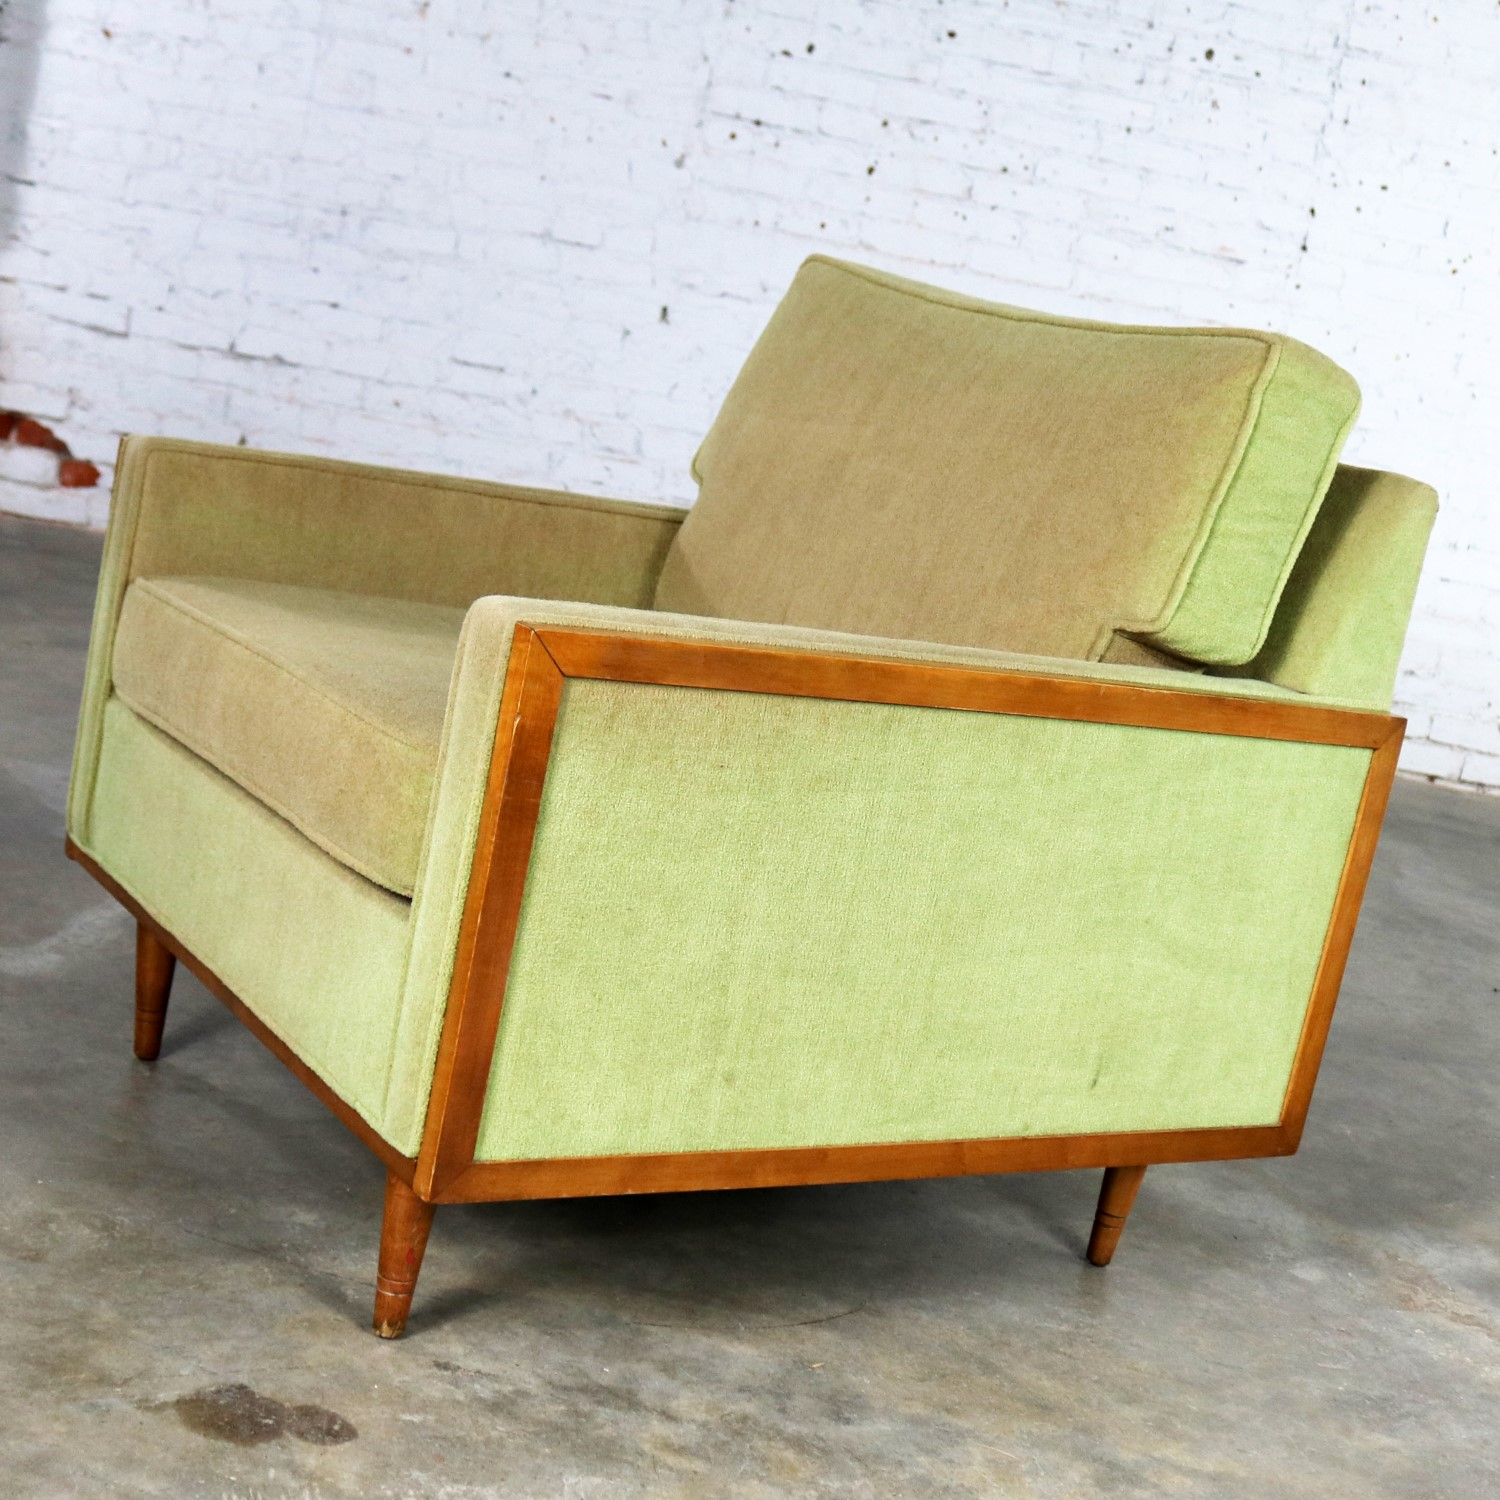 Fantastic Mid Century Modern Cube Lounge Club Chair Style Of Milo Machost Co Dining Chair Design Ideas Machostcouk